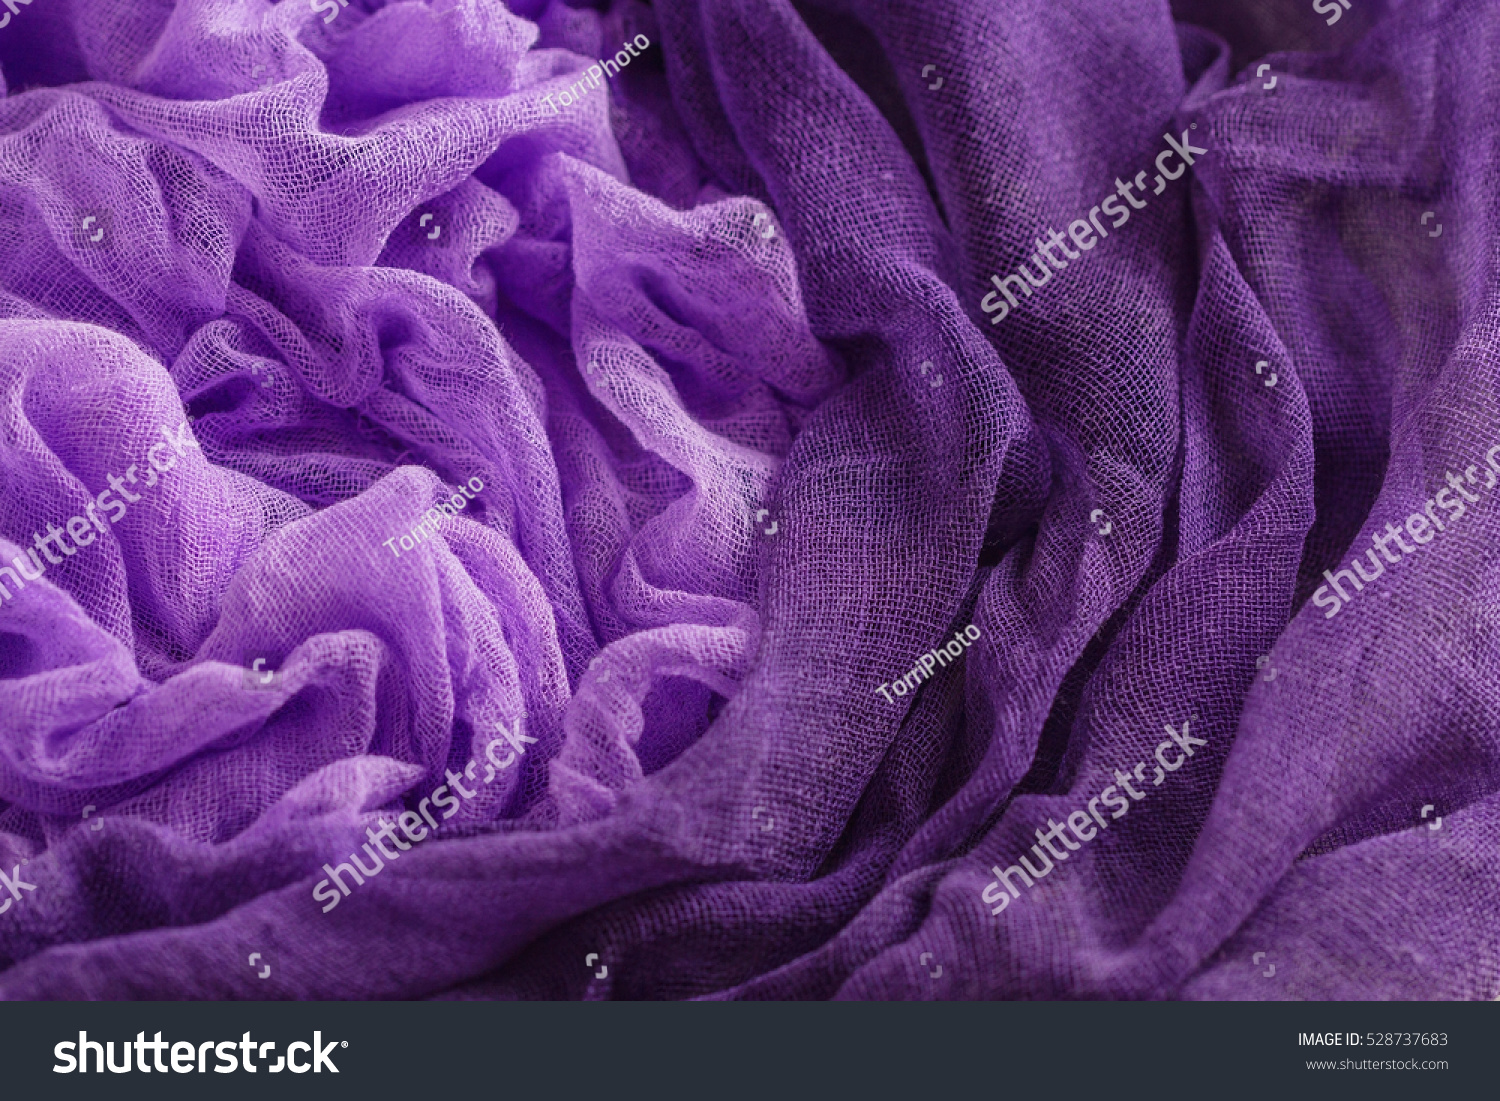 https://www.shutterstock.com/pic-528737683/stock-photo-hand-dyed-gauze-fabric-purple-color-colorful-cloth-texture-background.html